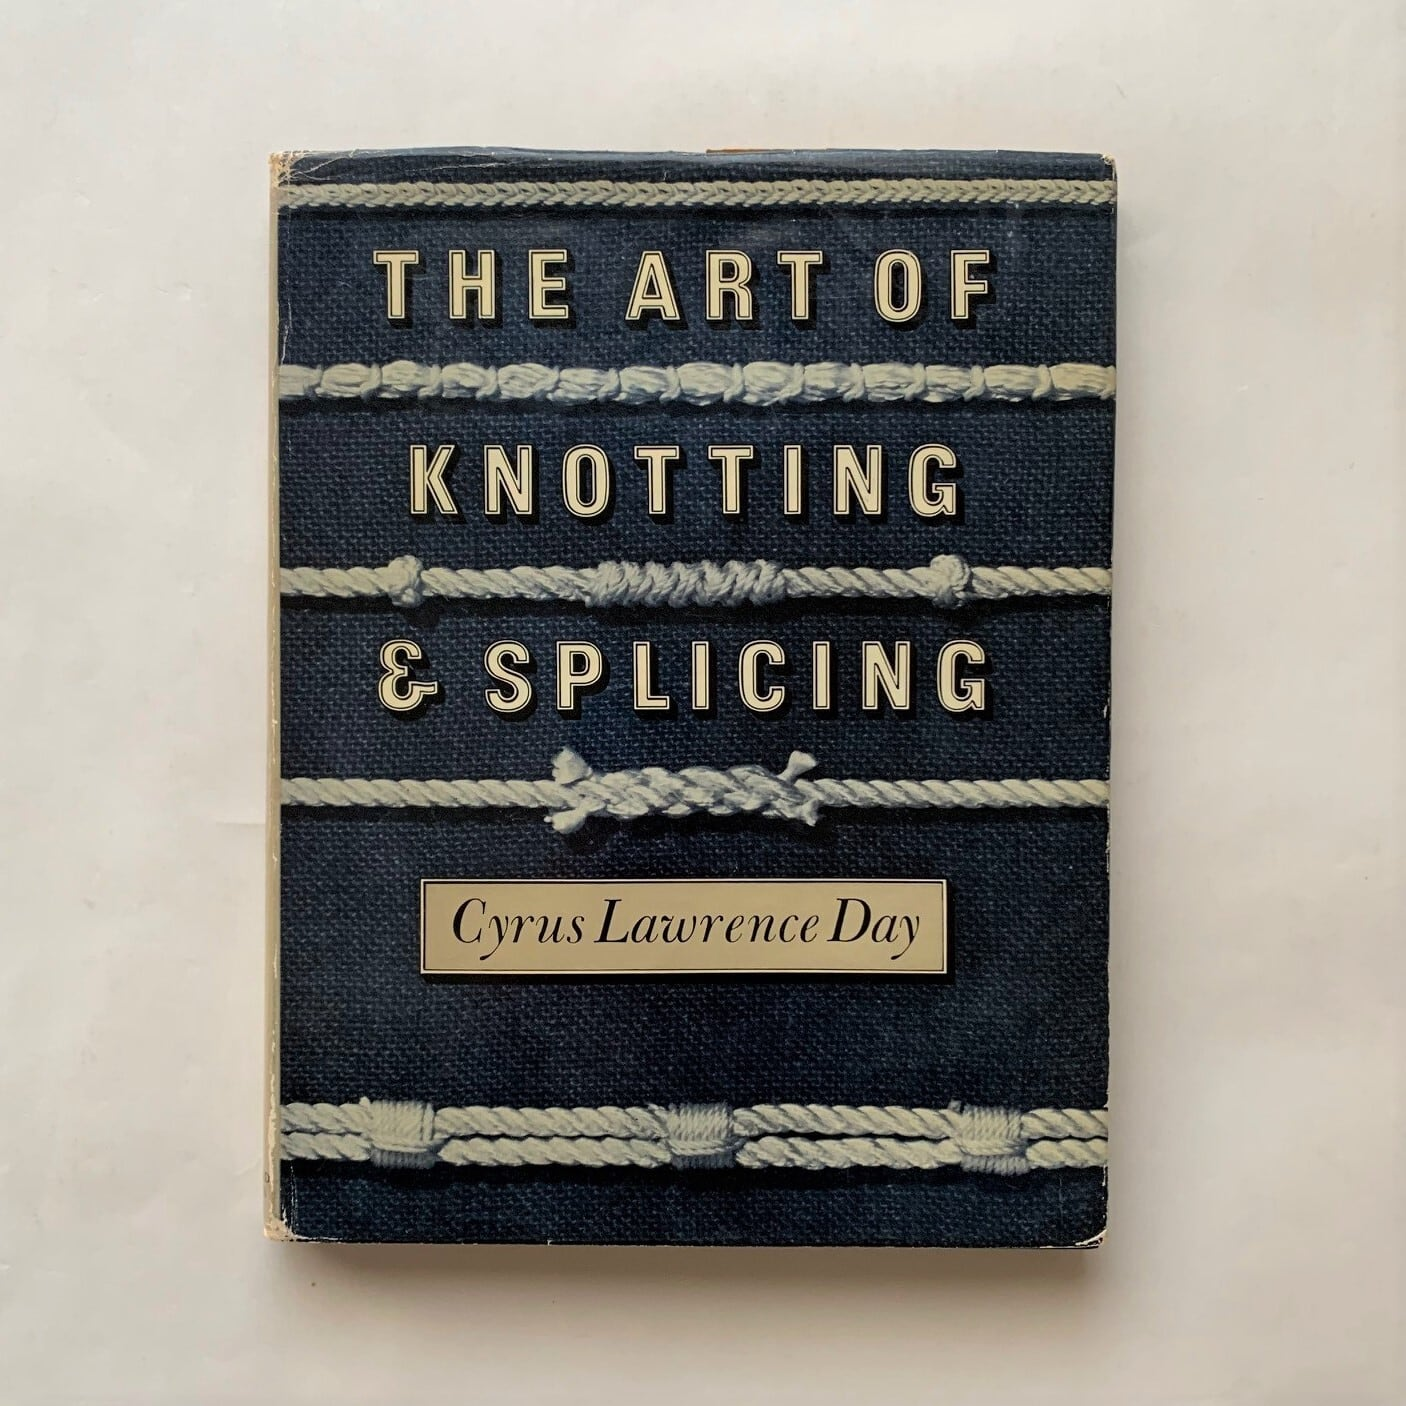 The art of knotting and splicing / Cyrus Lawrence Day / Adlard Coles